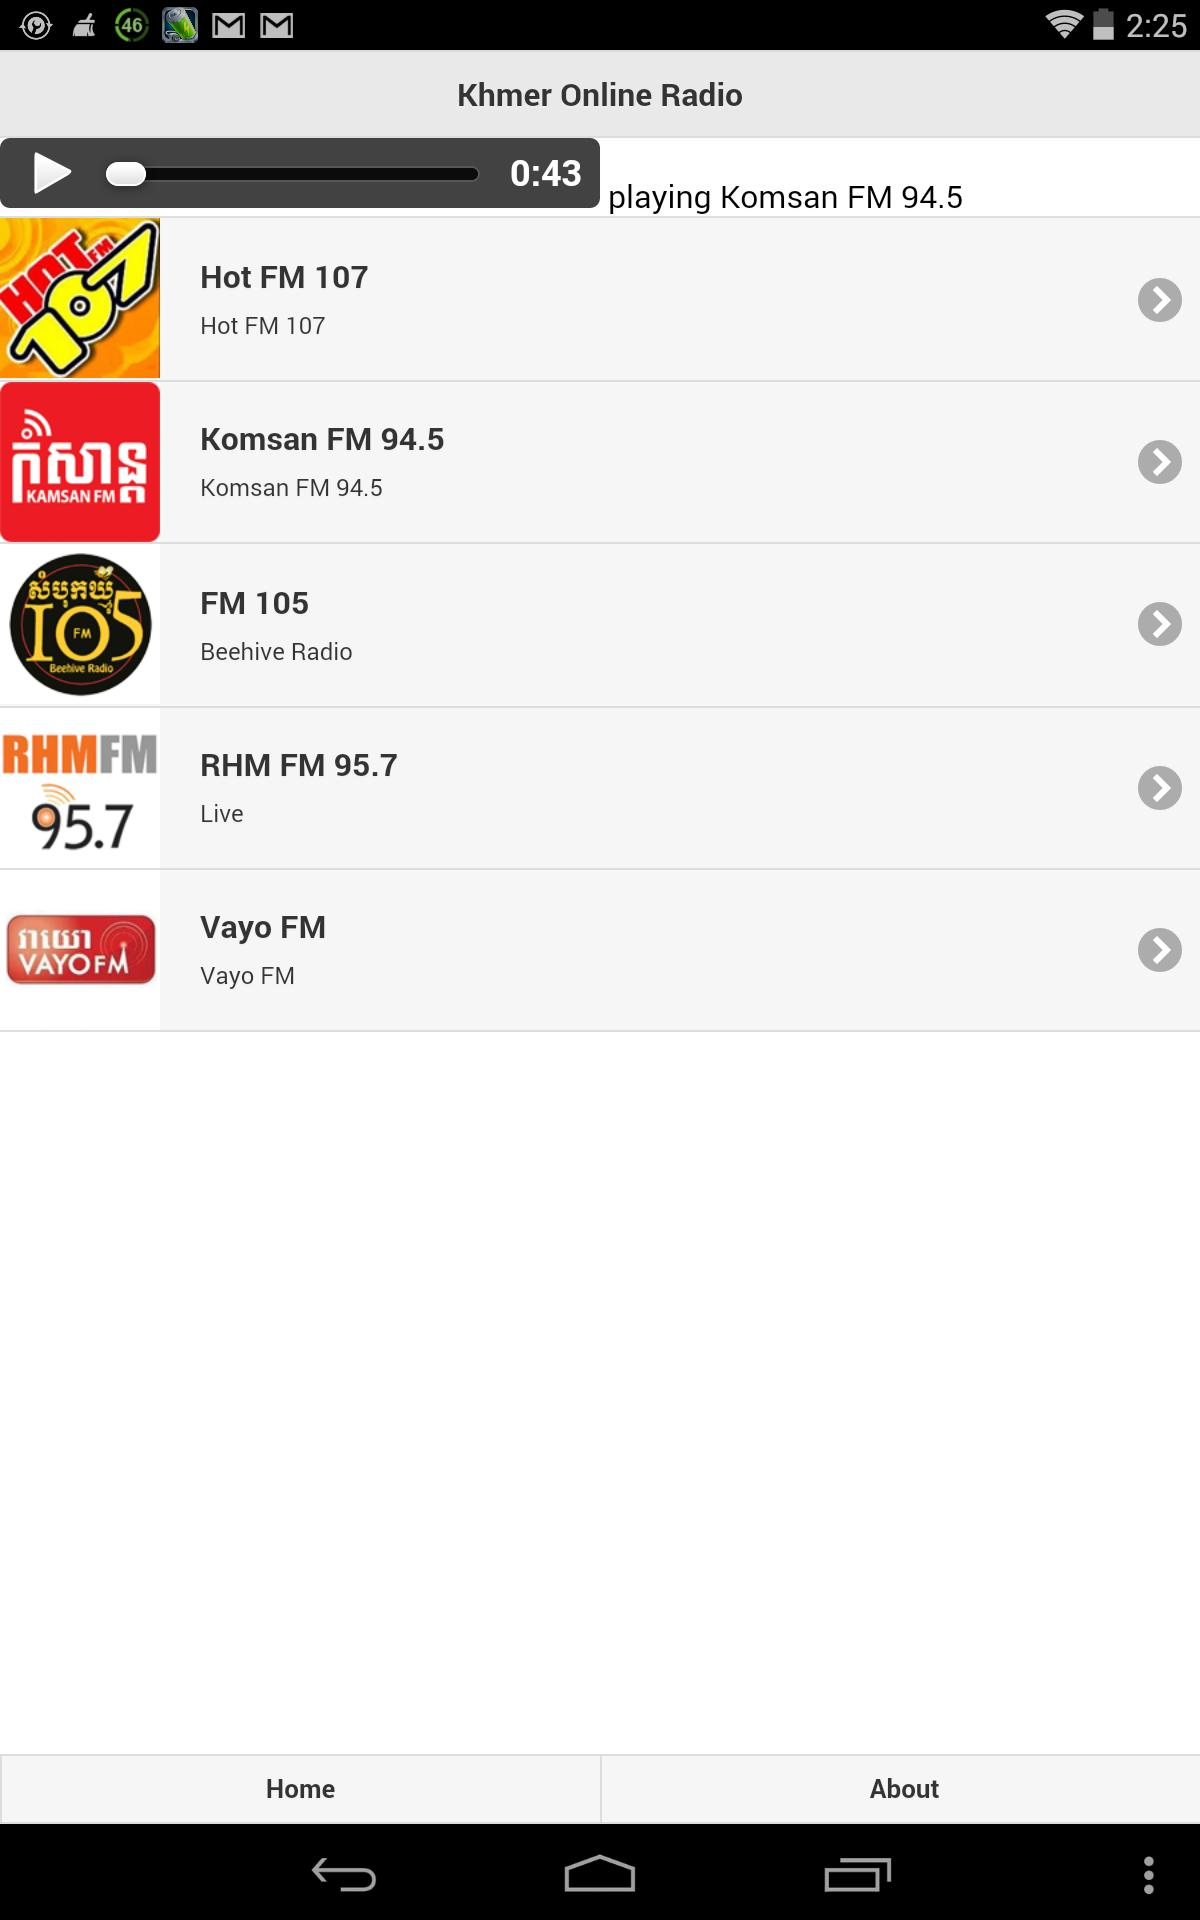 Khmer Online Radio for Android - APK Download